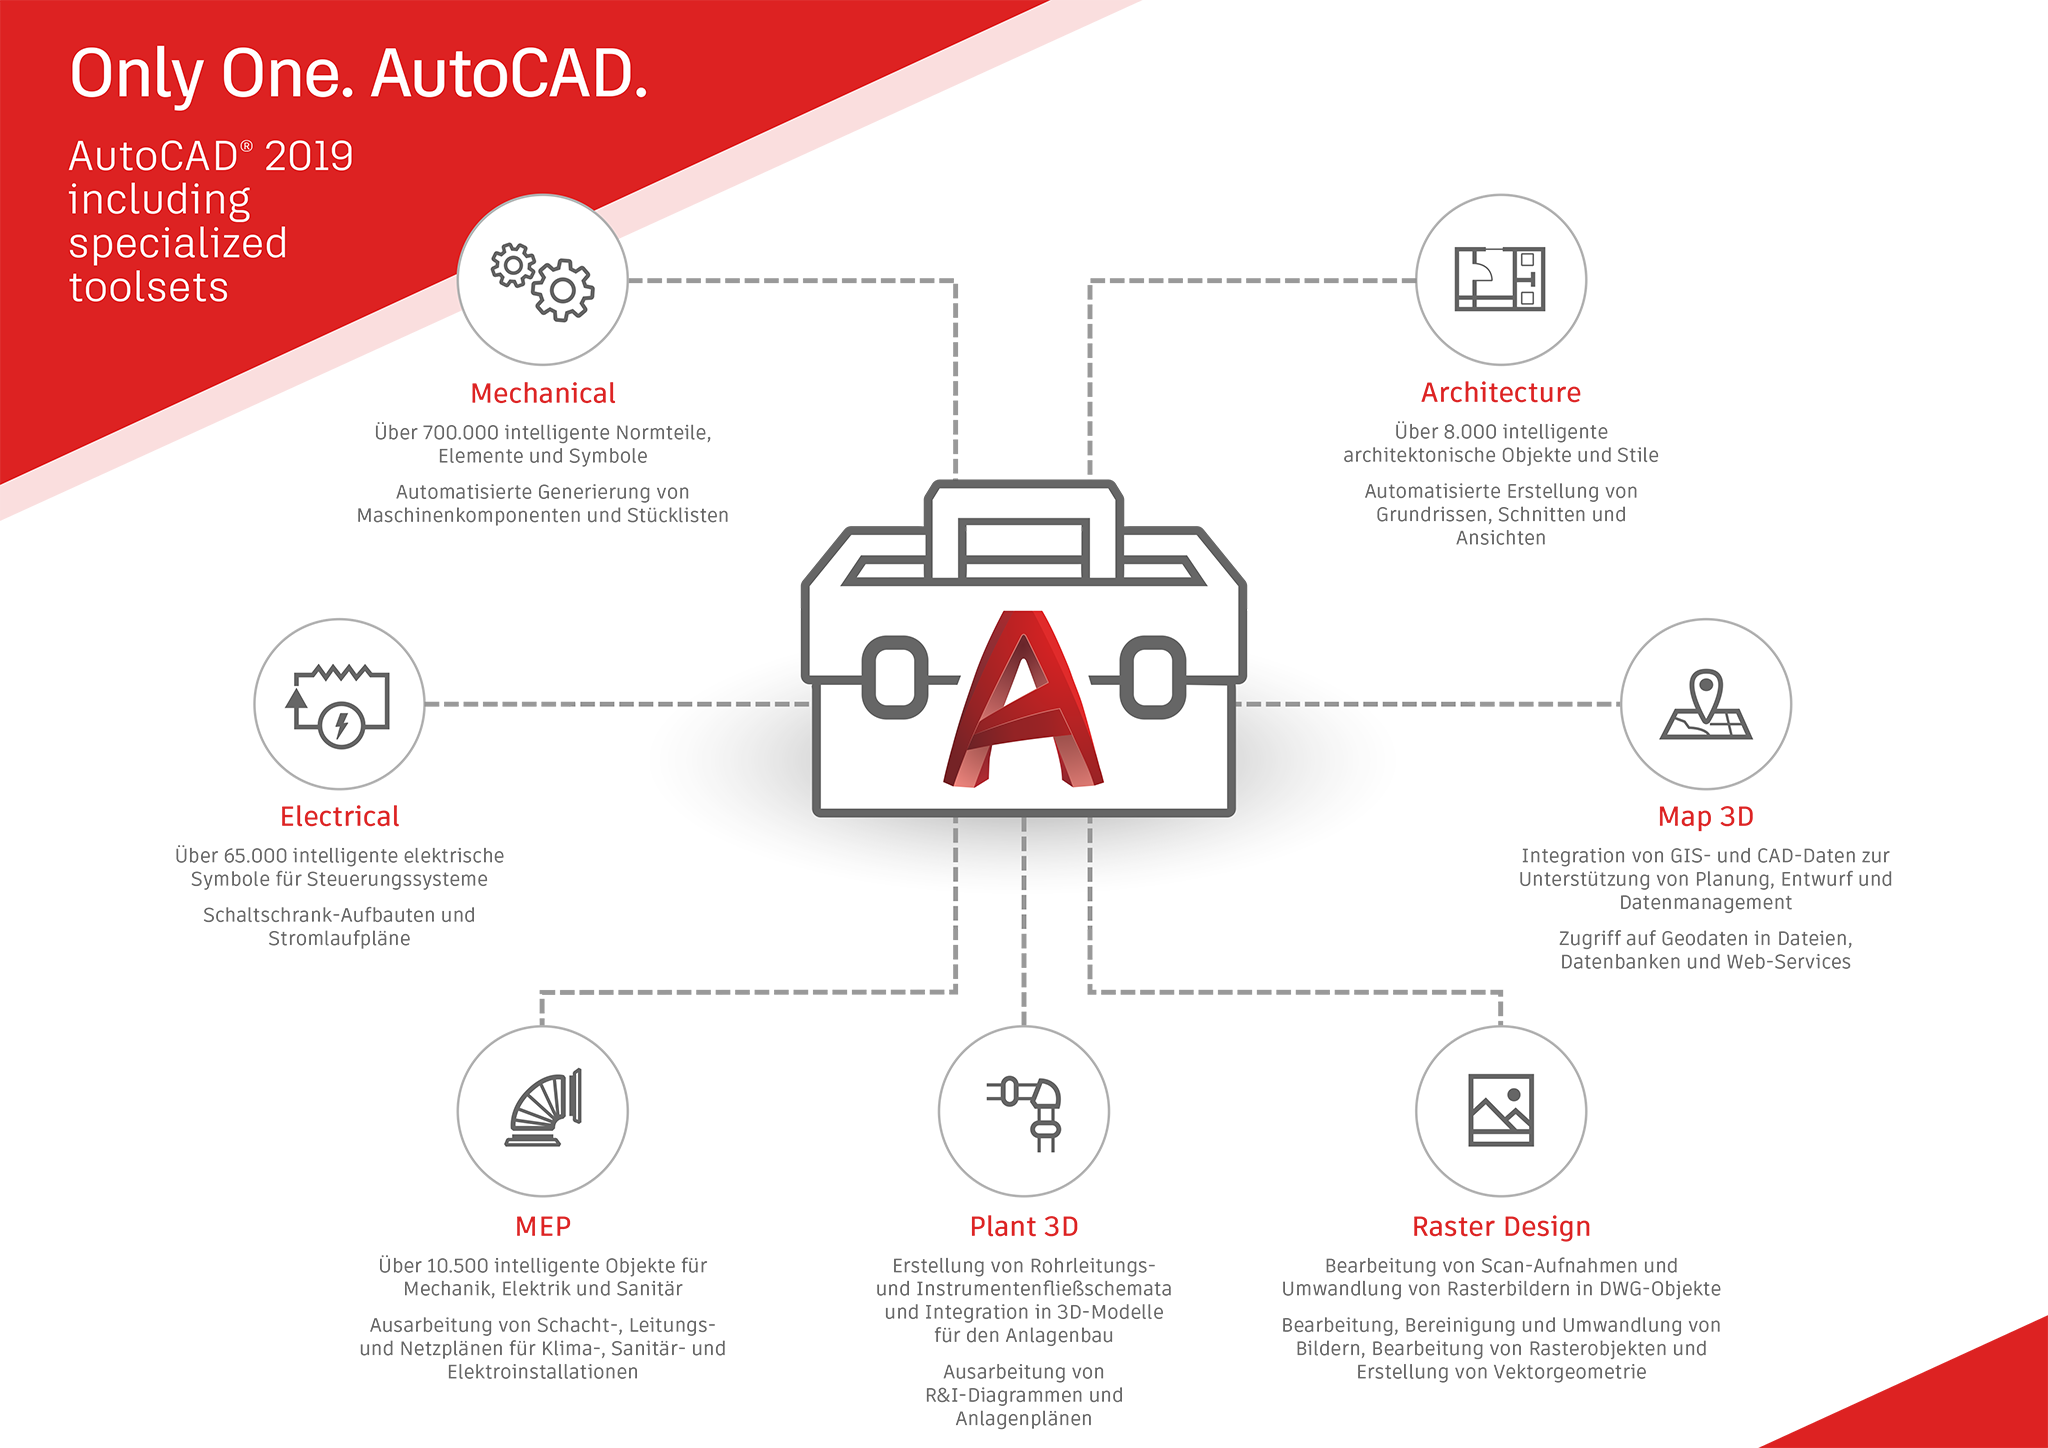 only-one-autocad-2019-toolsets-infographic-de